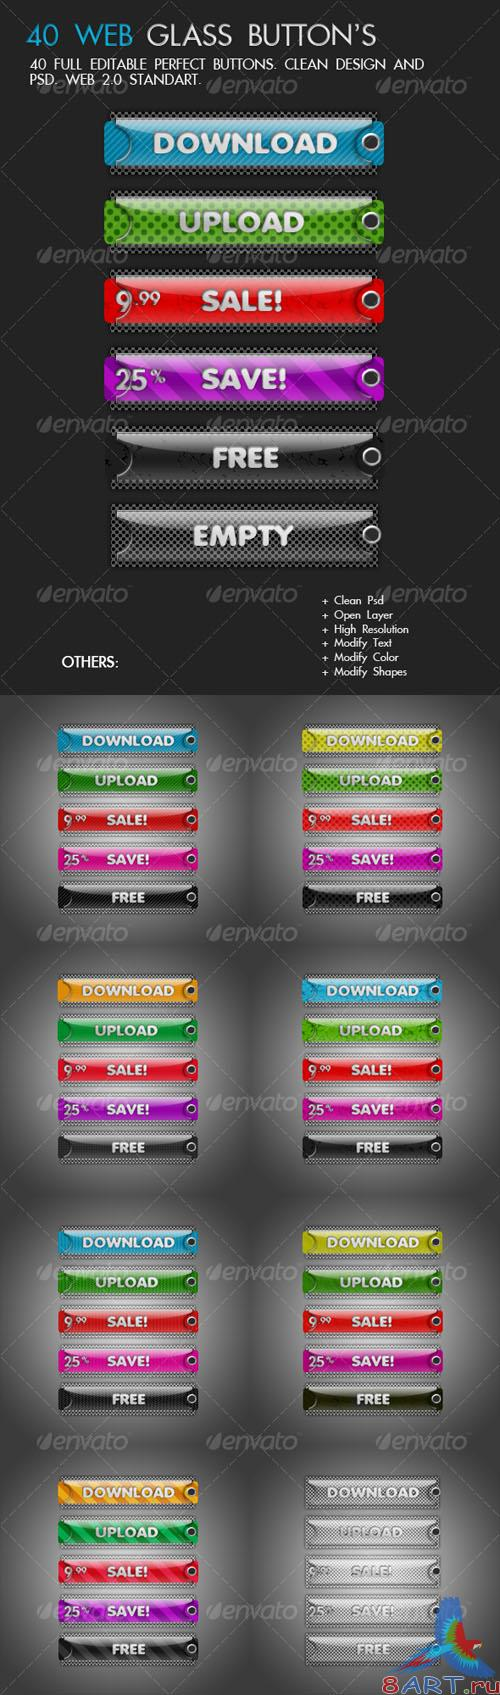 40 Candy Tags Button Version 2 - GraphicRiver